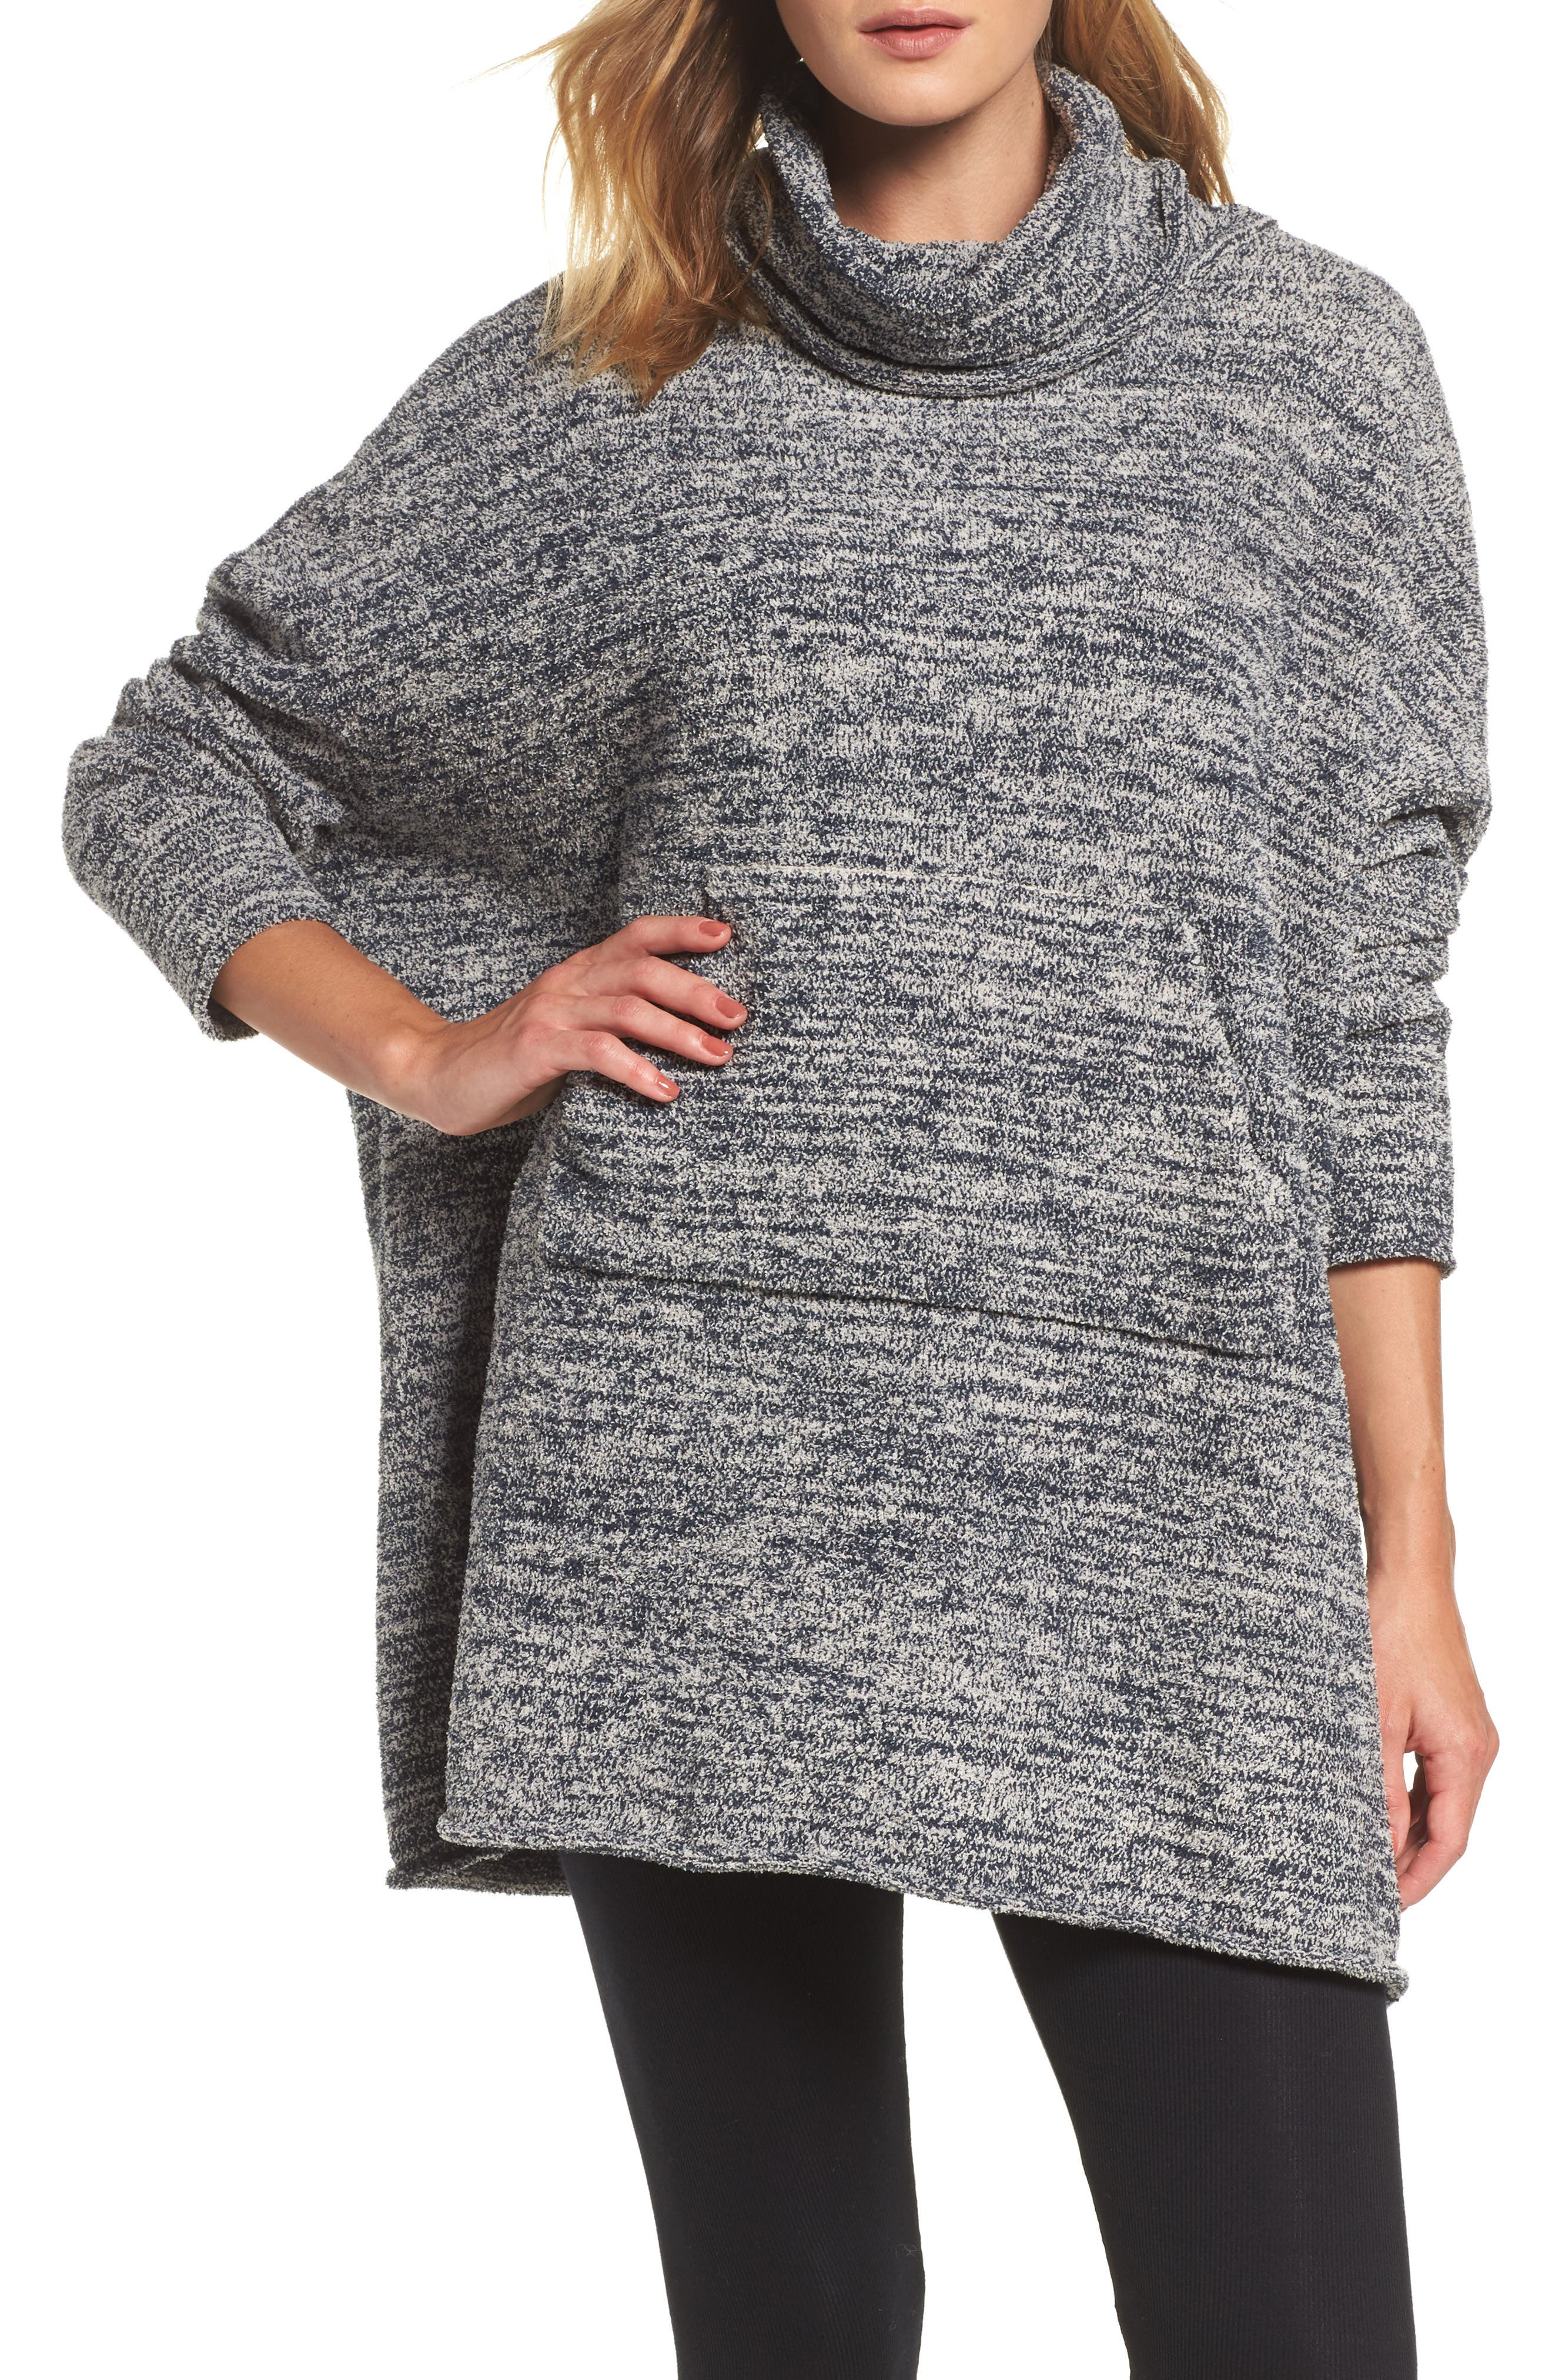 Cozychic<sup>®</sup> Lounge Pullover,                             Main thumbnail 1, color,                             Indigo/ Stone Heathered